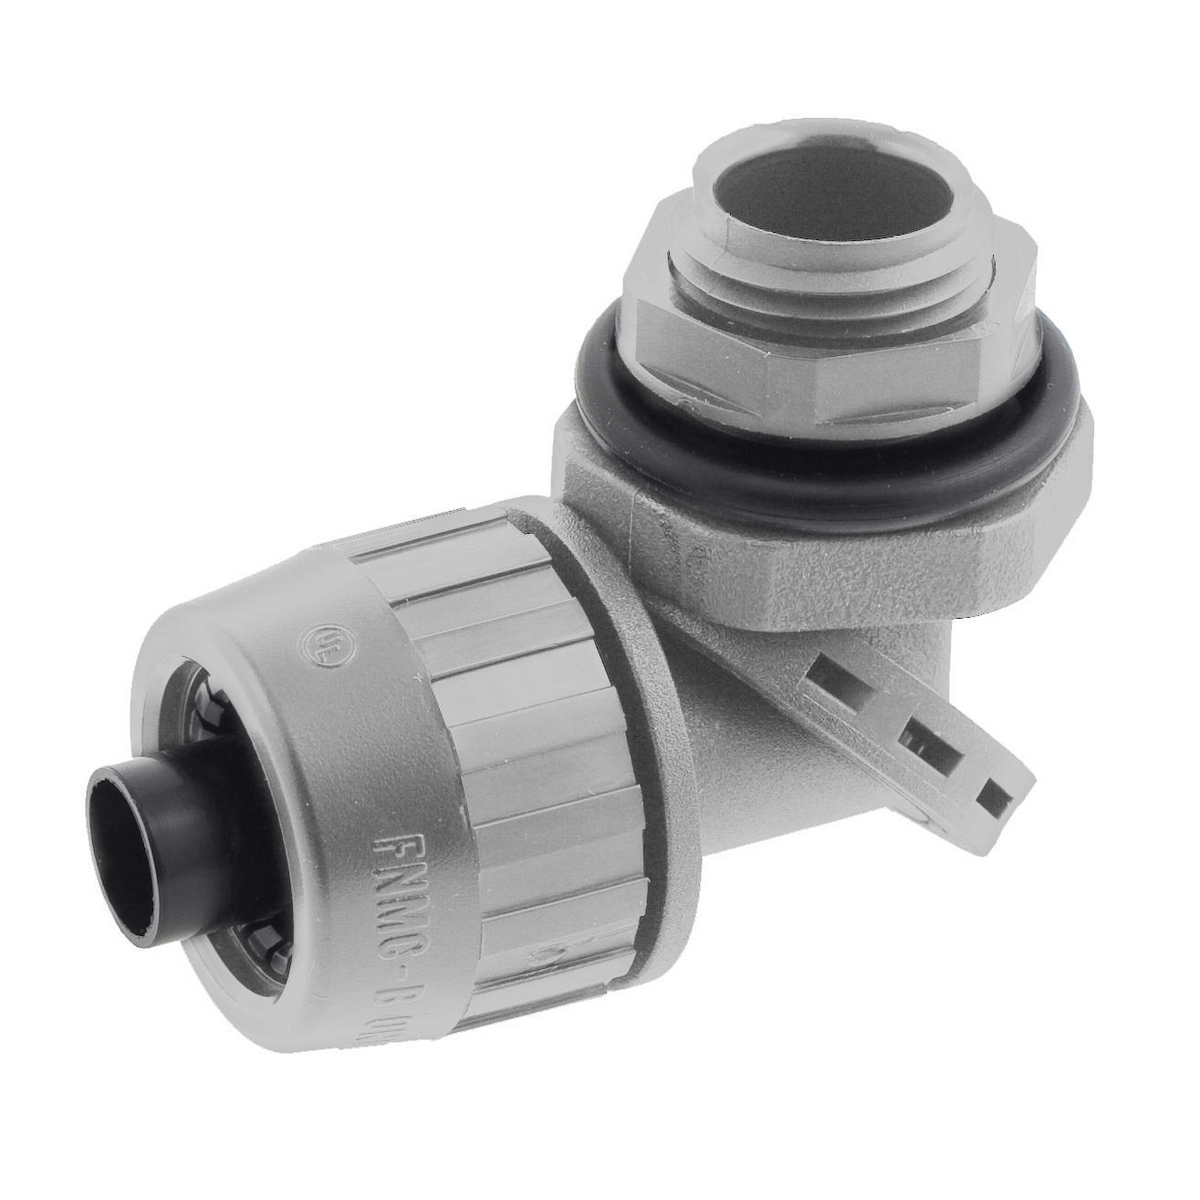 Hubbell PS0389NGY Liquidtight Connector